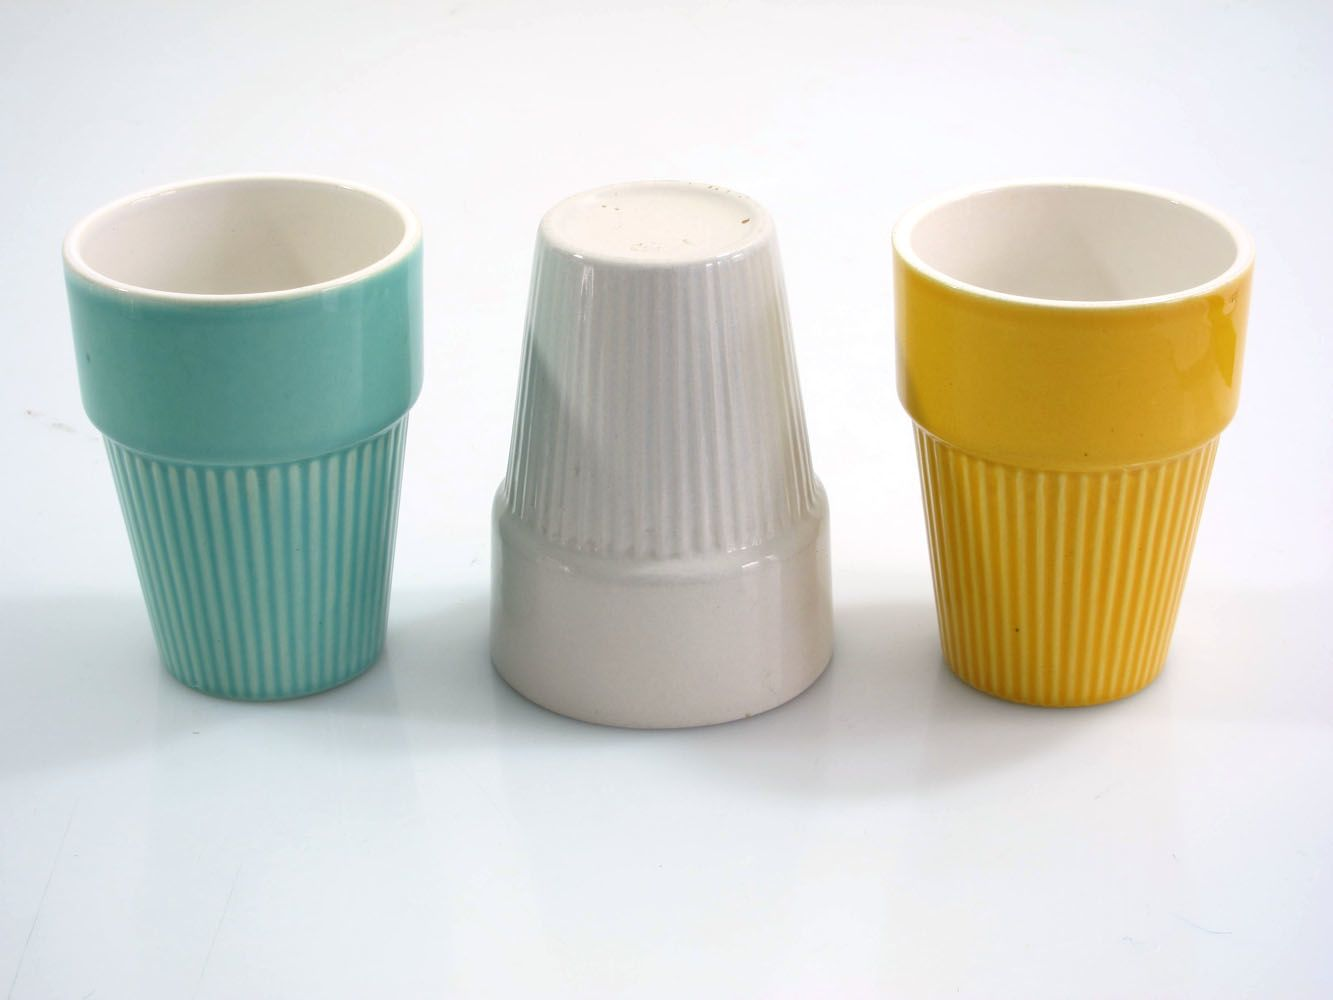 Retro Sixties Ceramic Cups Sold